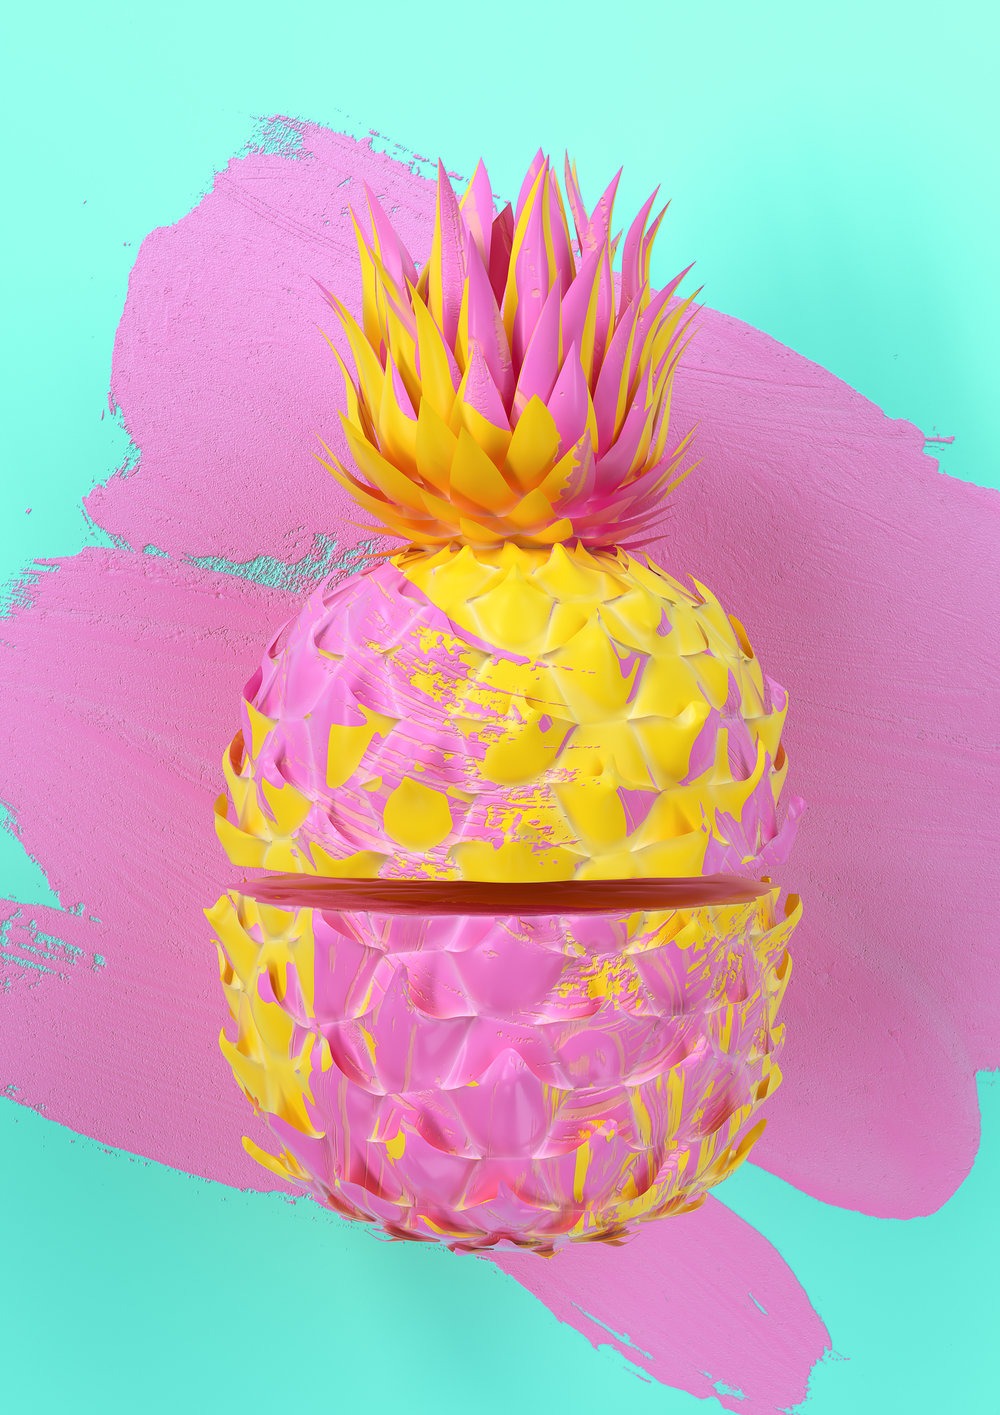 PaintedObject_Pineapple.jpg